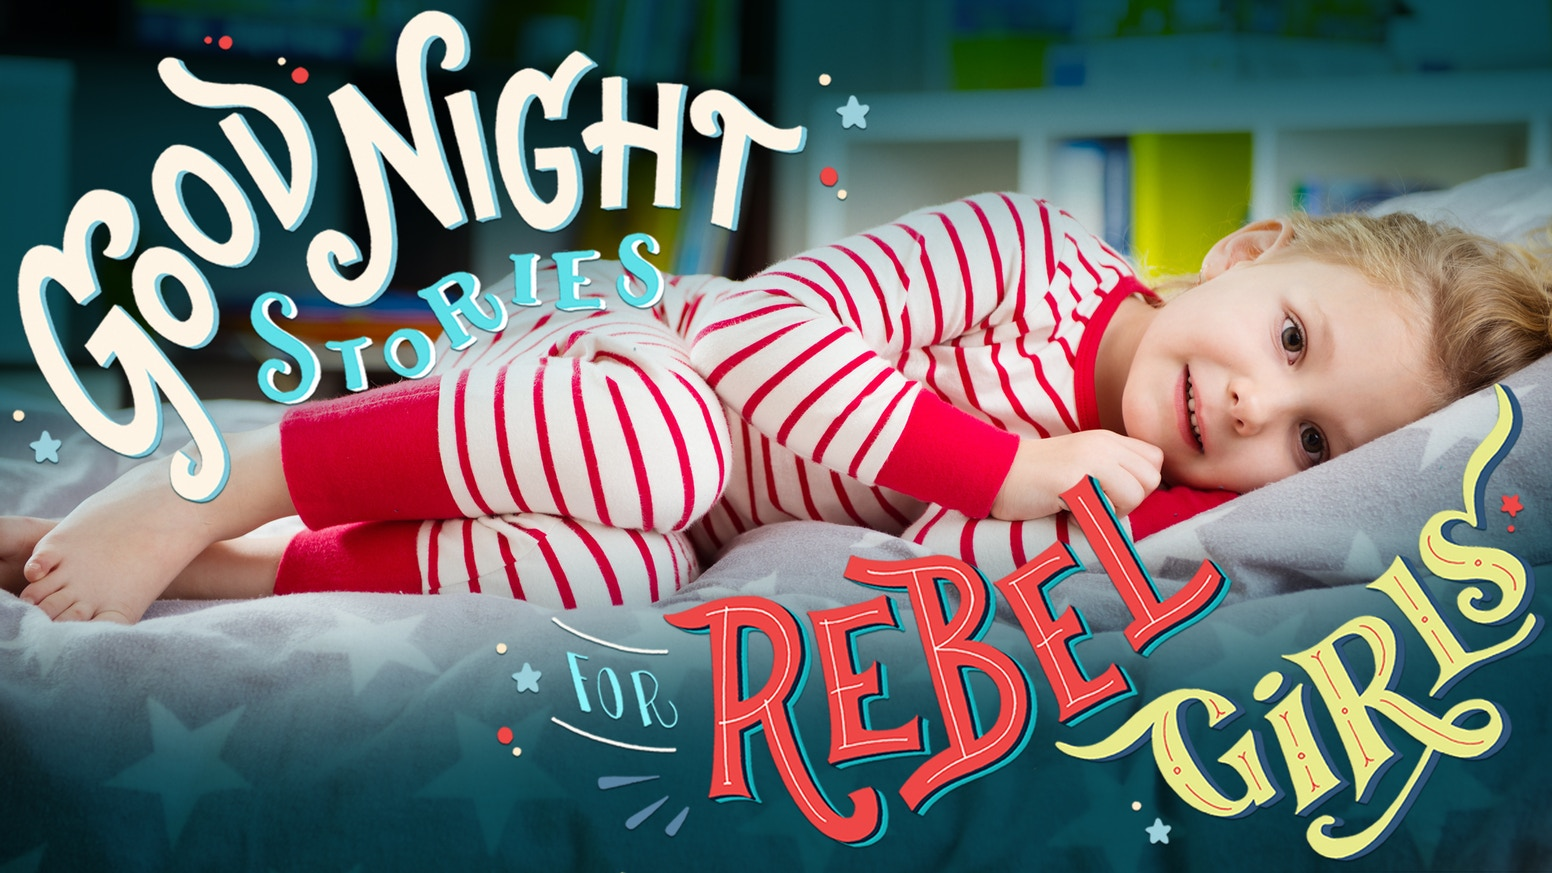 Good Night Stories for Rebel Girls - 100 tales to dream BIG